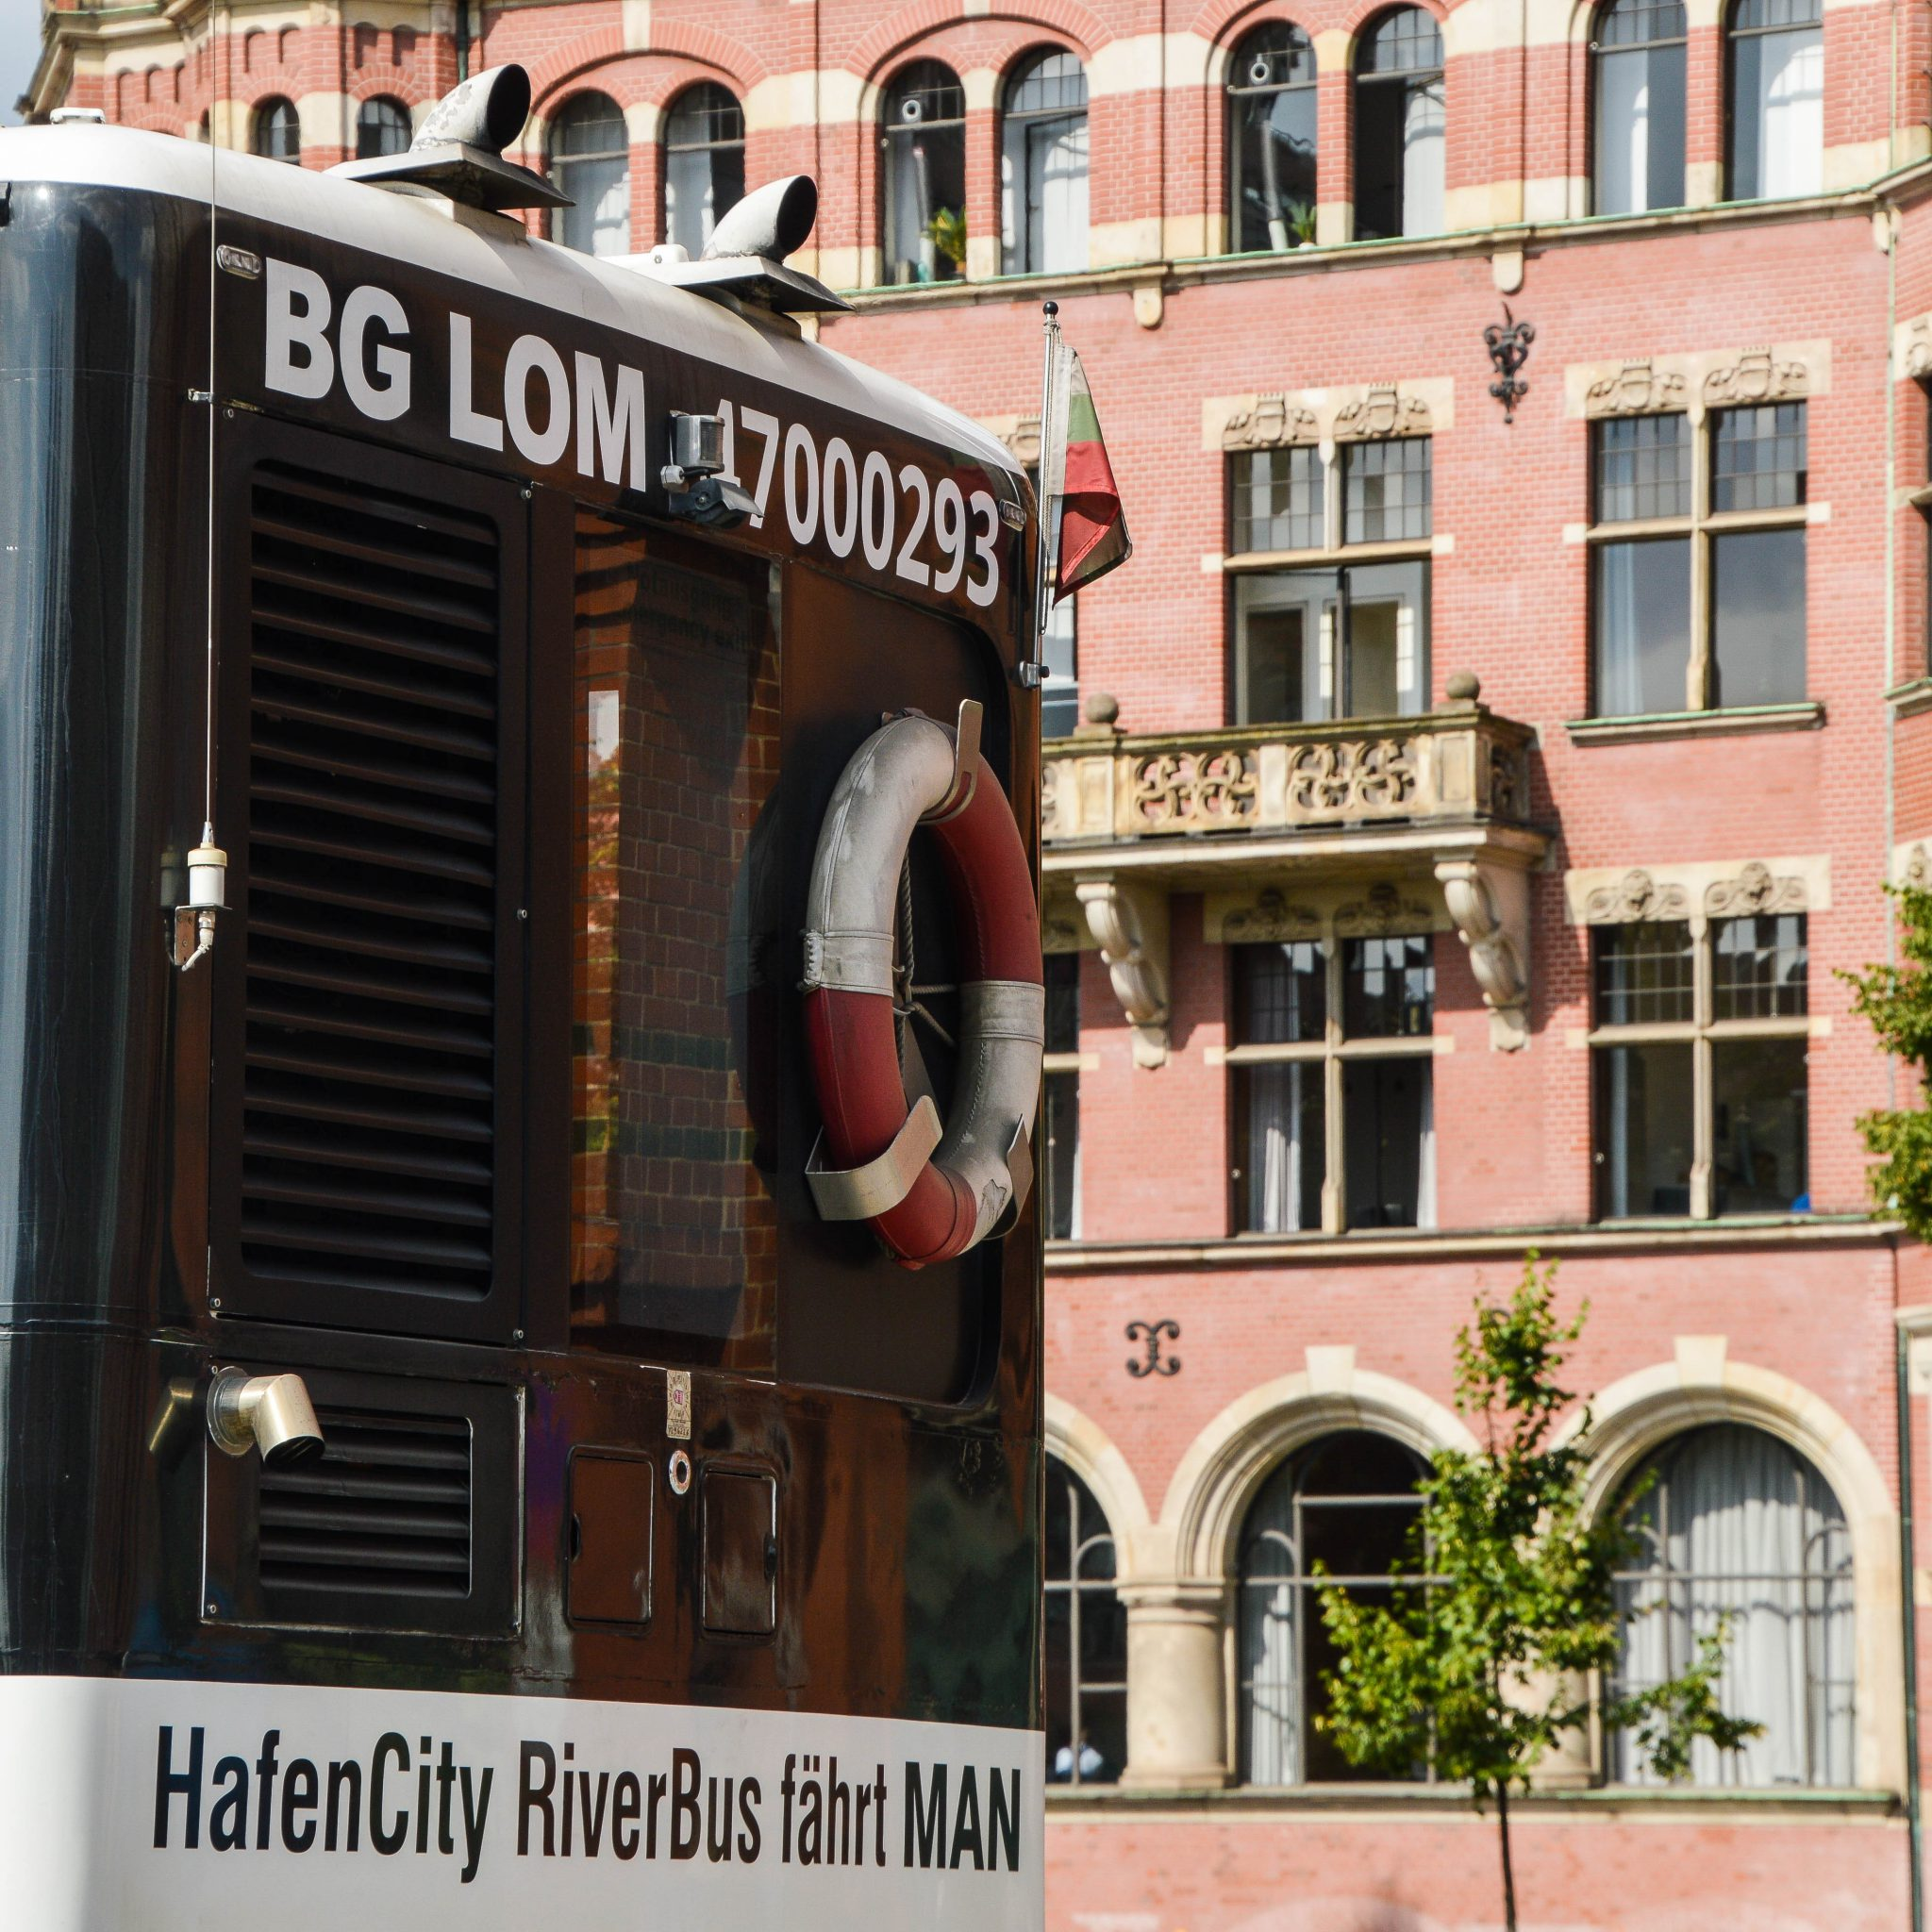 Hafencity Riverbus